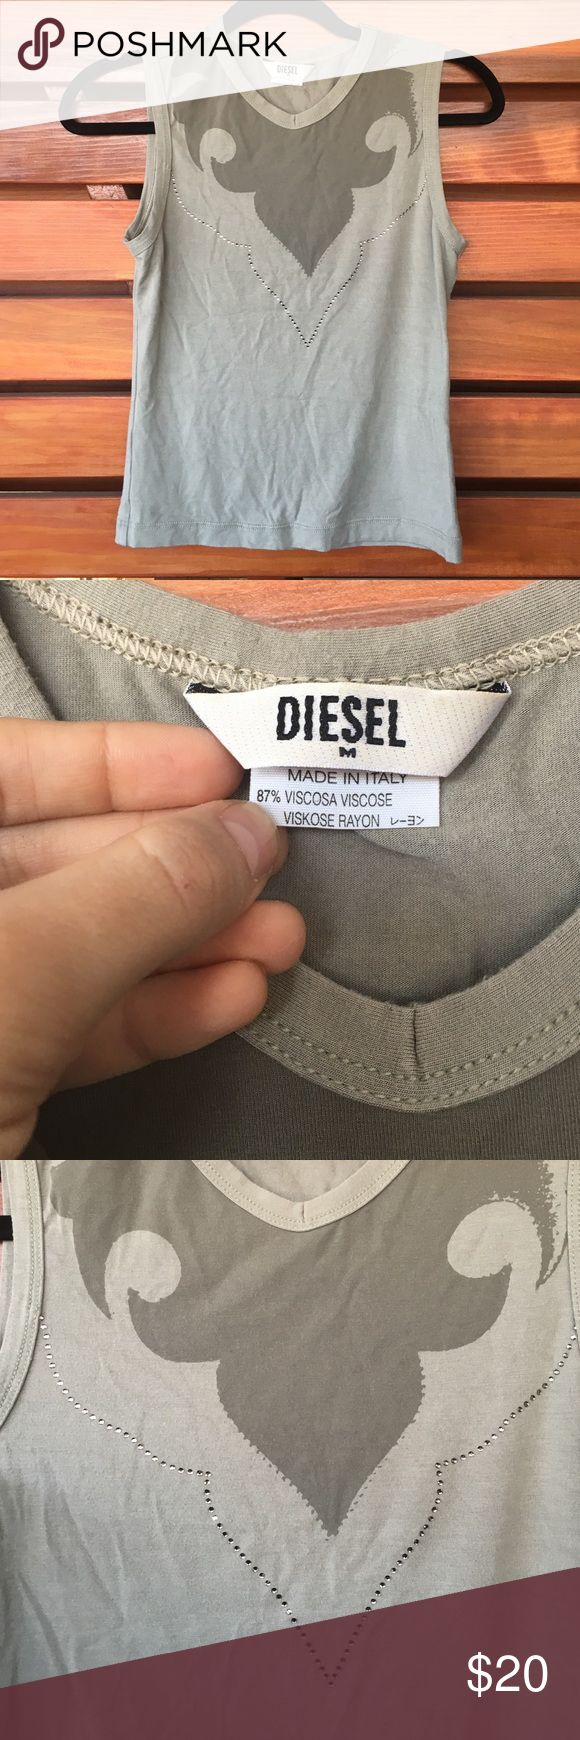 NWOT Diesel tank top Super soft & thick rayon Diesel top. Worn precisely once, in mint condition. Perfect for the punk rocker in your life, or just to add a cool kick to any outfit :) Diesel Tops Tank Tops